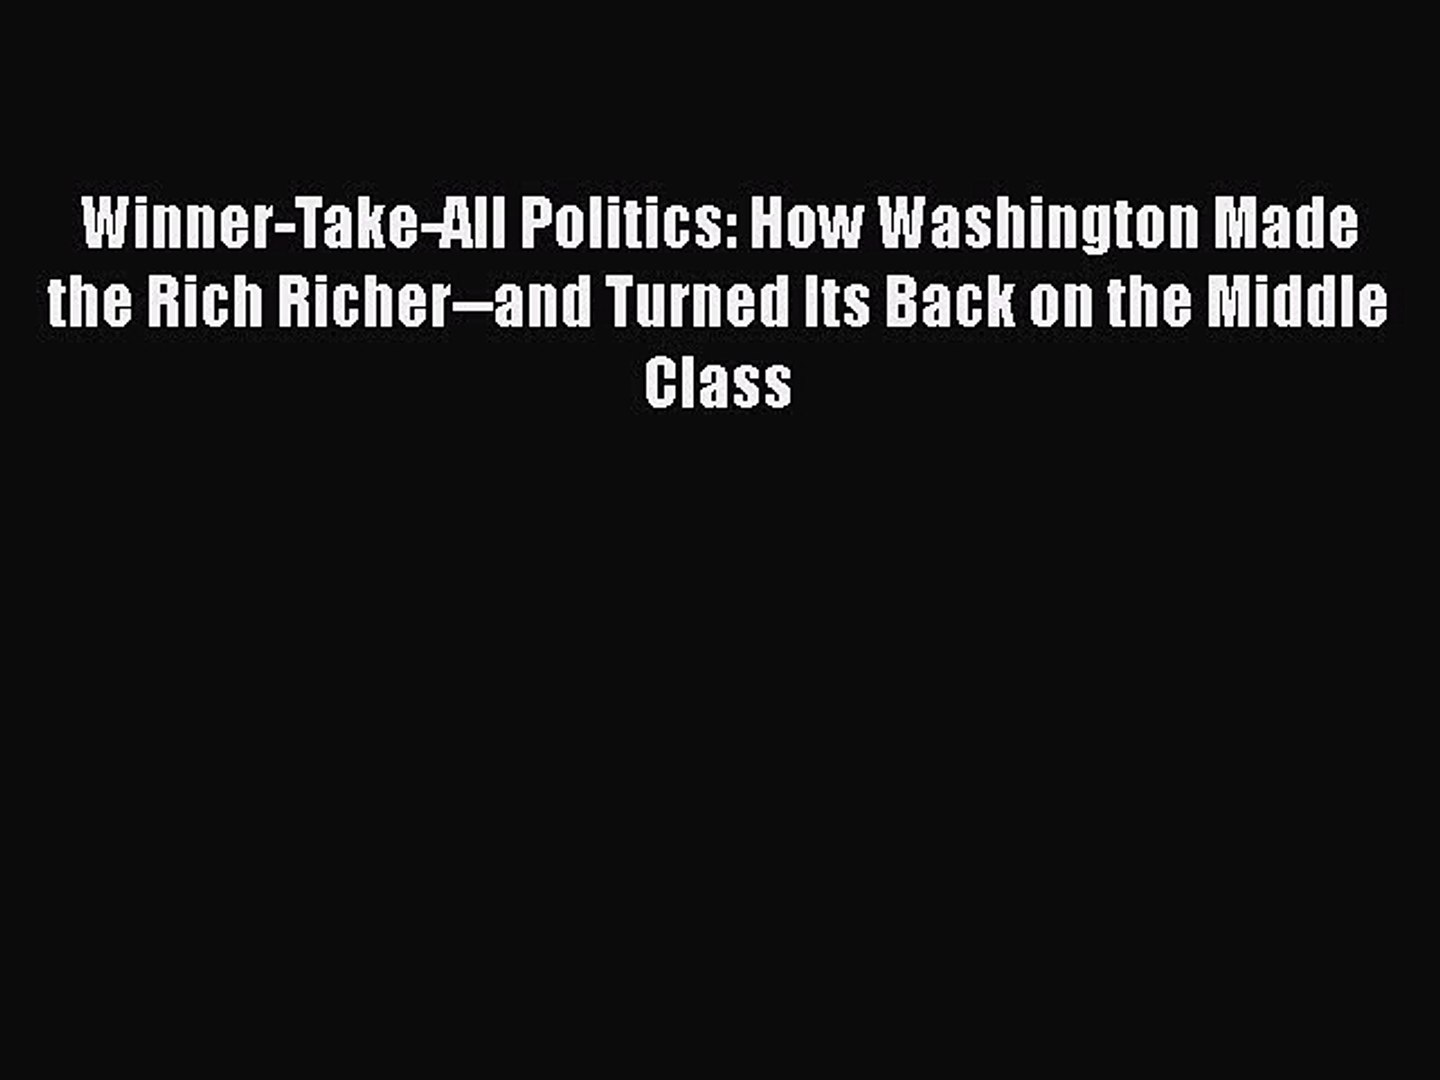 [Read] Winner-Take-All Politics: How Washington Made the Rich Richer--and Turned Its Back on